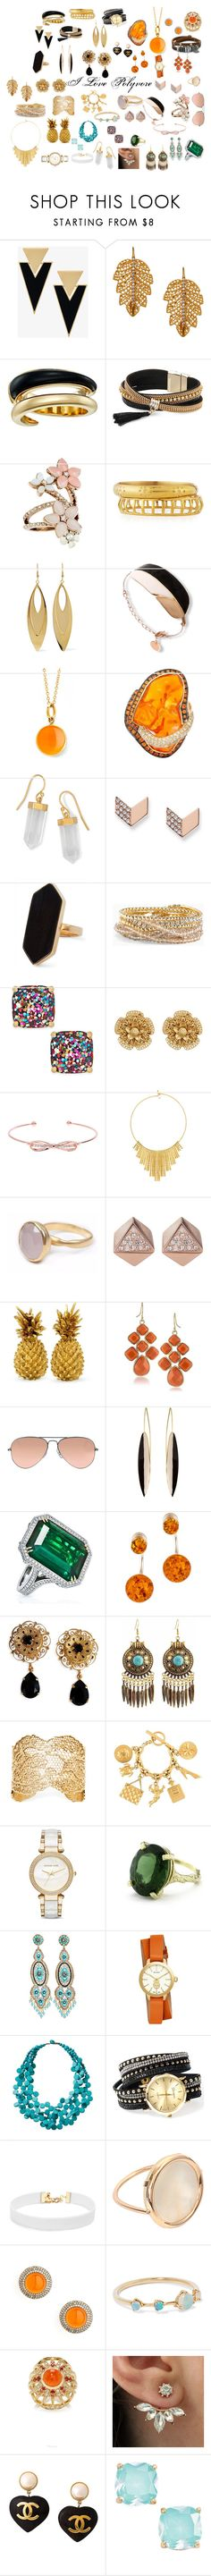 """""""Jewellery Gallery"""" by oduyemiseyi on Polyvore featuring Yves Saint Laurent, Marika, Michael Kors, Simons, Accessorize, Ashley Pittman, Kenneth Jay Lane, Syna, BillyTheTree and FOSSIL"""